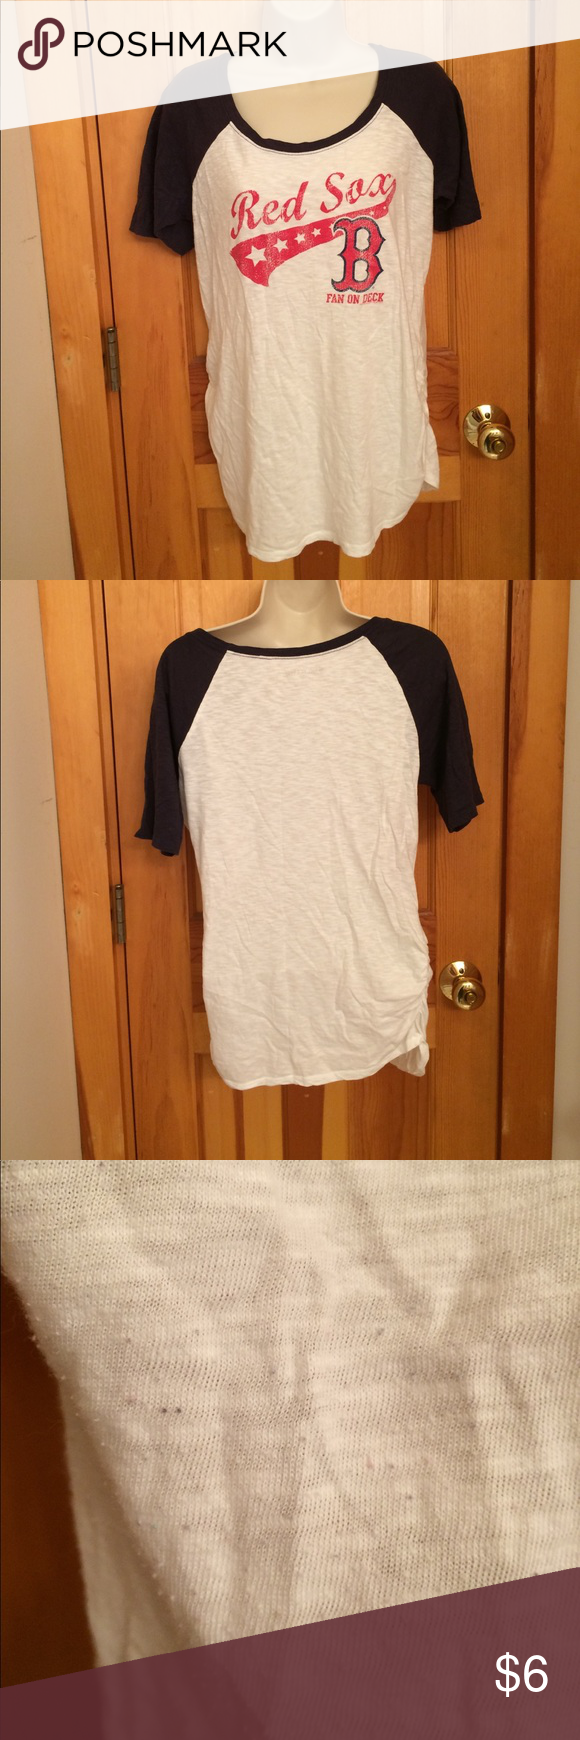 Red Sox maternity top In good condition. Only a little piling as shown in pictures. And a tiny pen mark also shown in picture. Motherhood Maternity Tops Tees - Short Sleeve